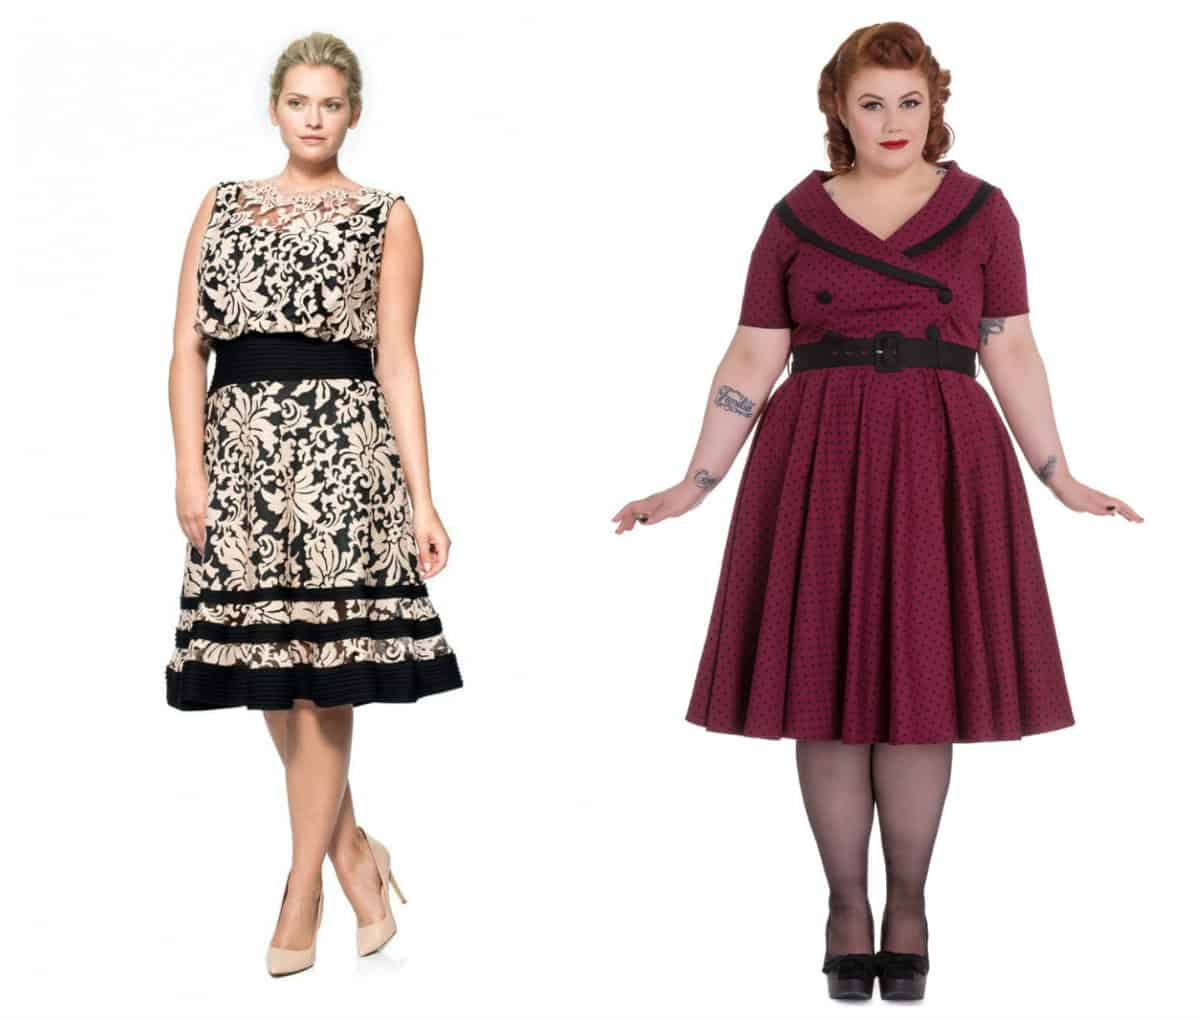 Women S Plus Size Cocktail And Evening Dresses Trends Autumn Winter 2015 2016 Dress Trends